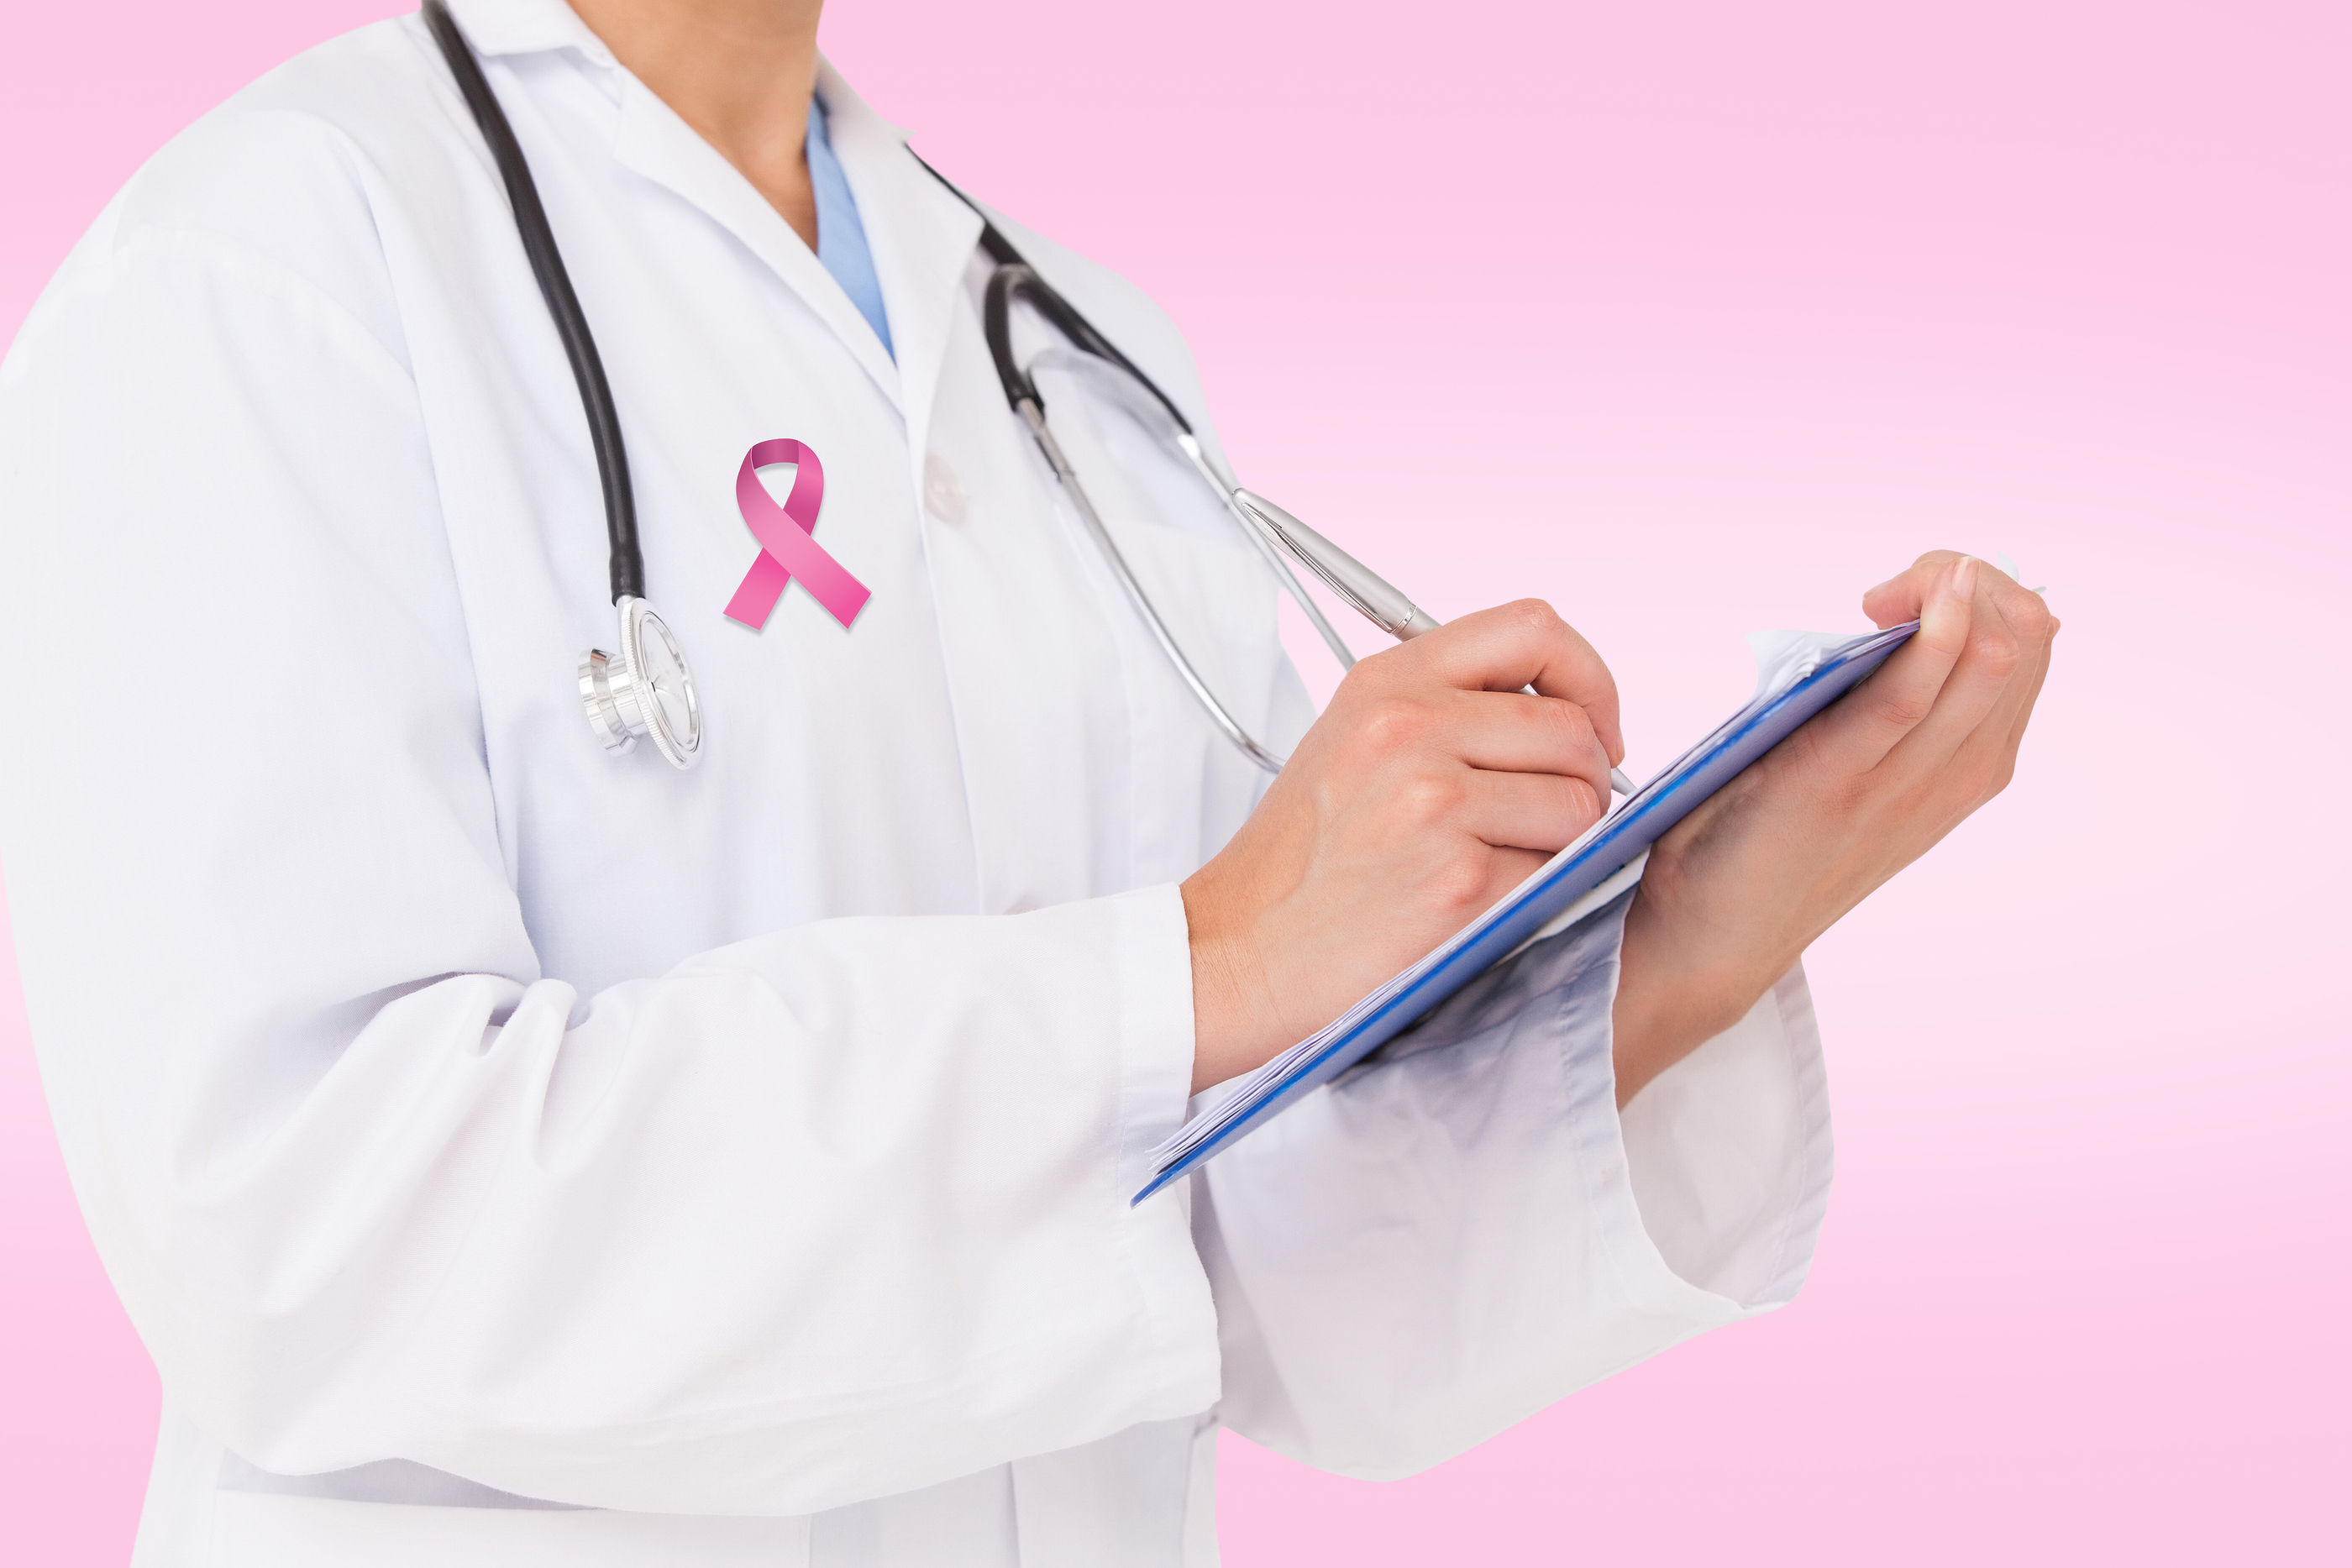 Doctor writing on clipboard against pink